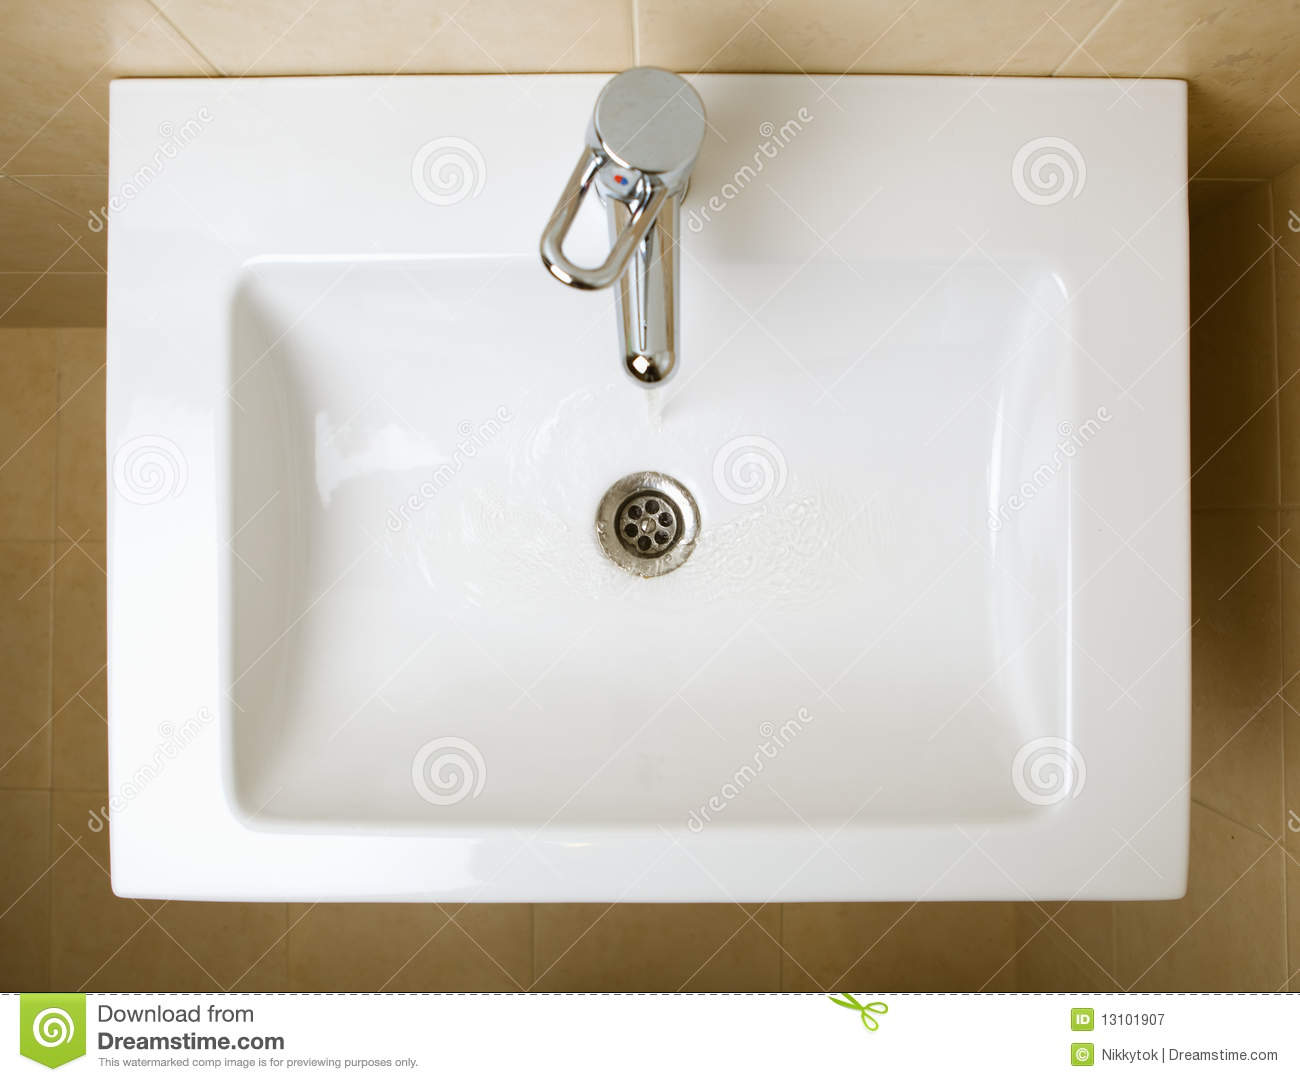 Washing Sink Stock Image Image Of Luxury Bathtub